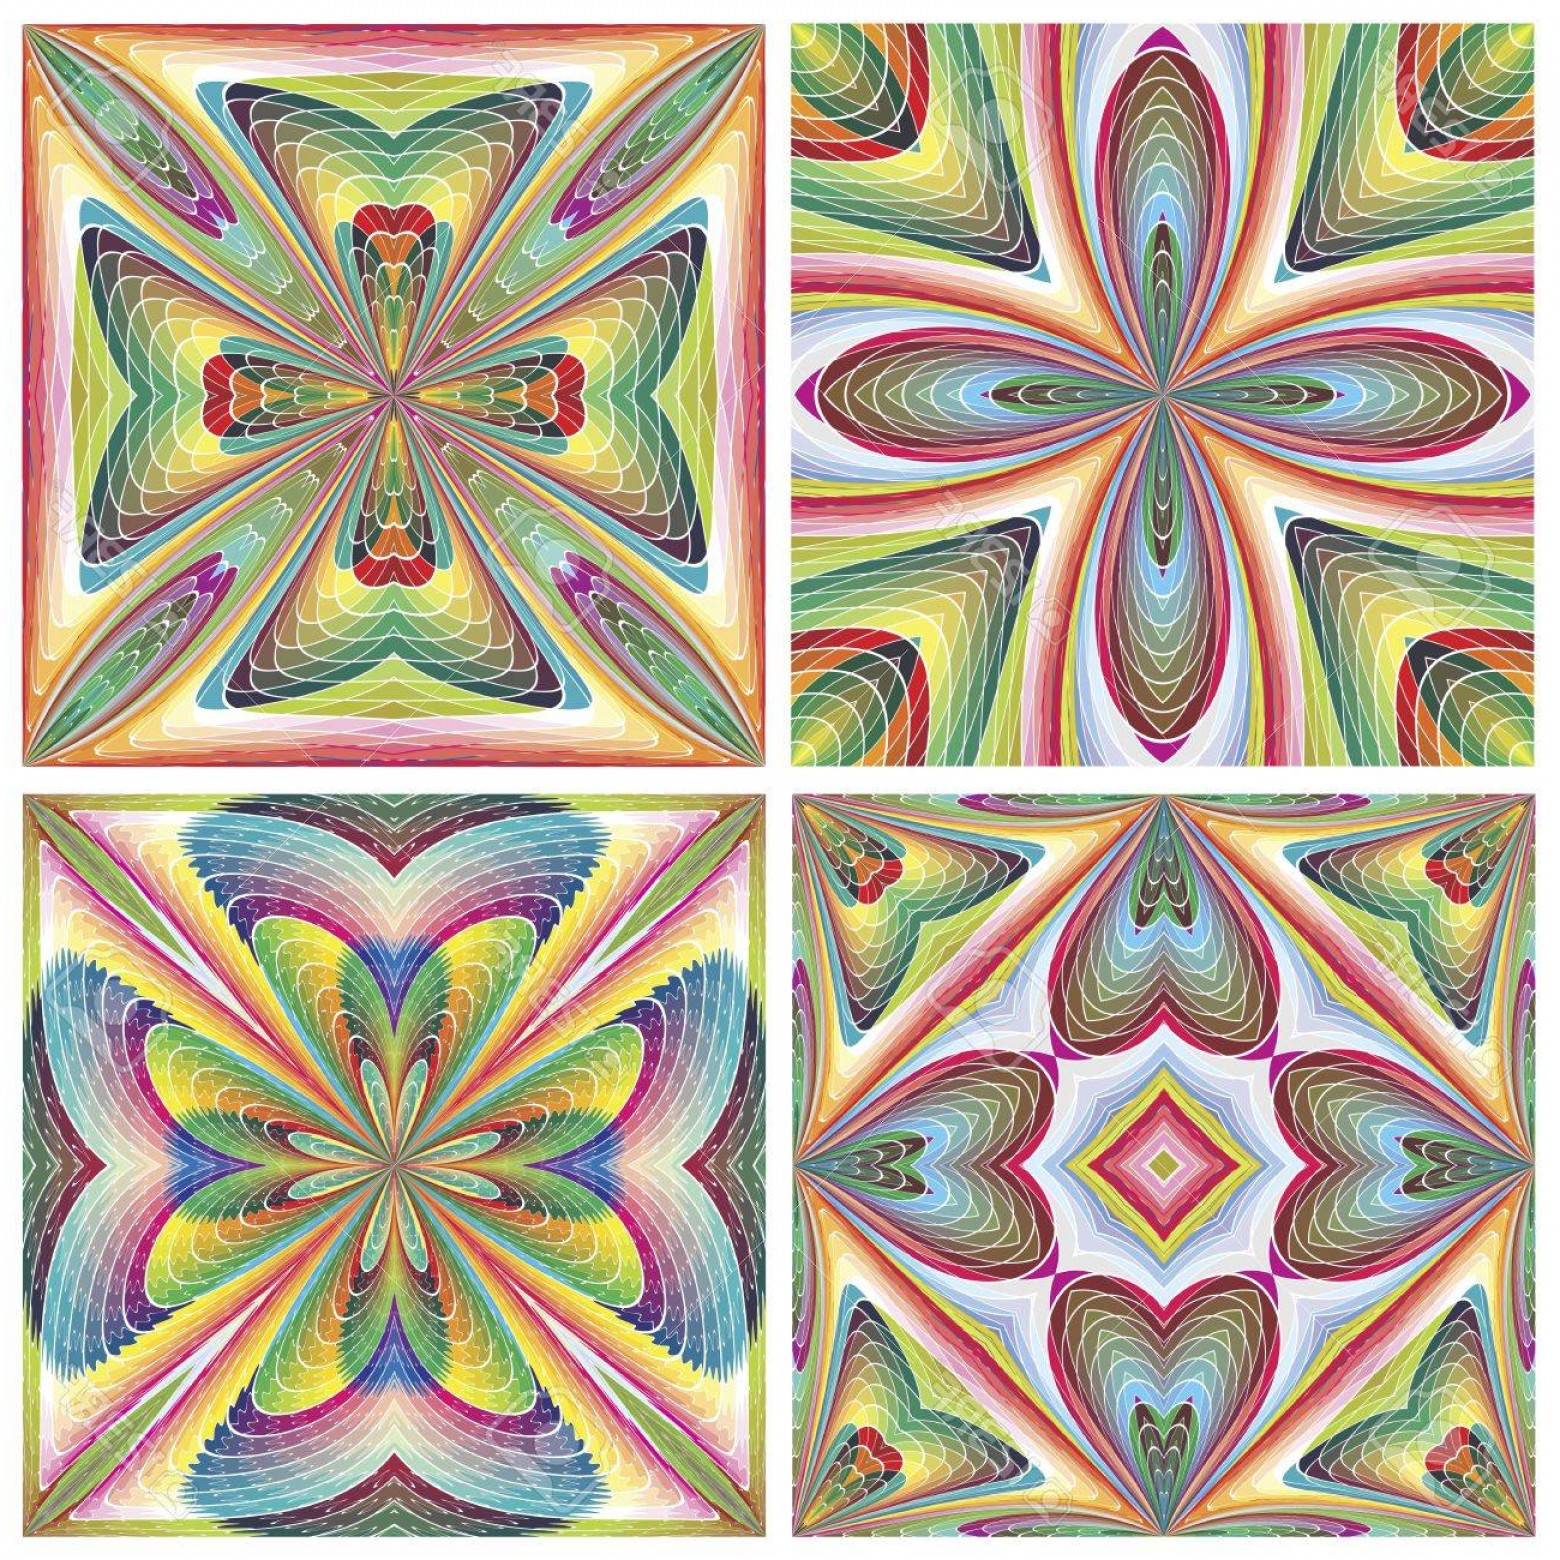 Art Deco Tile Vector Design: Photoset Of Seamless Stain Glass Art Deco Tiles With Historic Motifs In Vivid And Bright Colors For Tapes